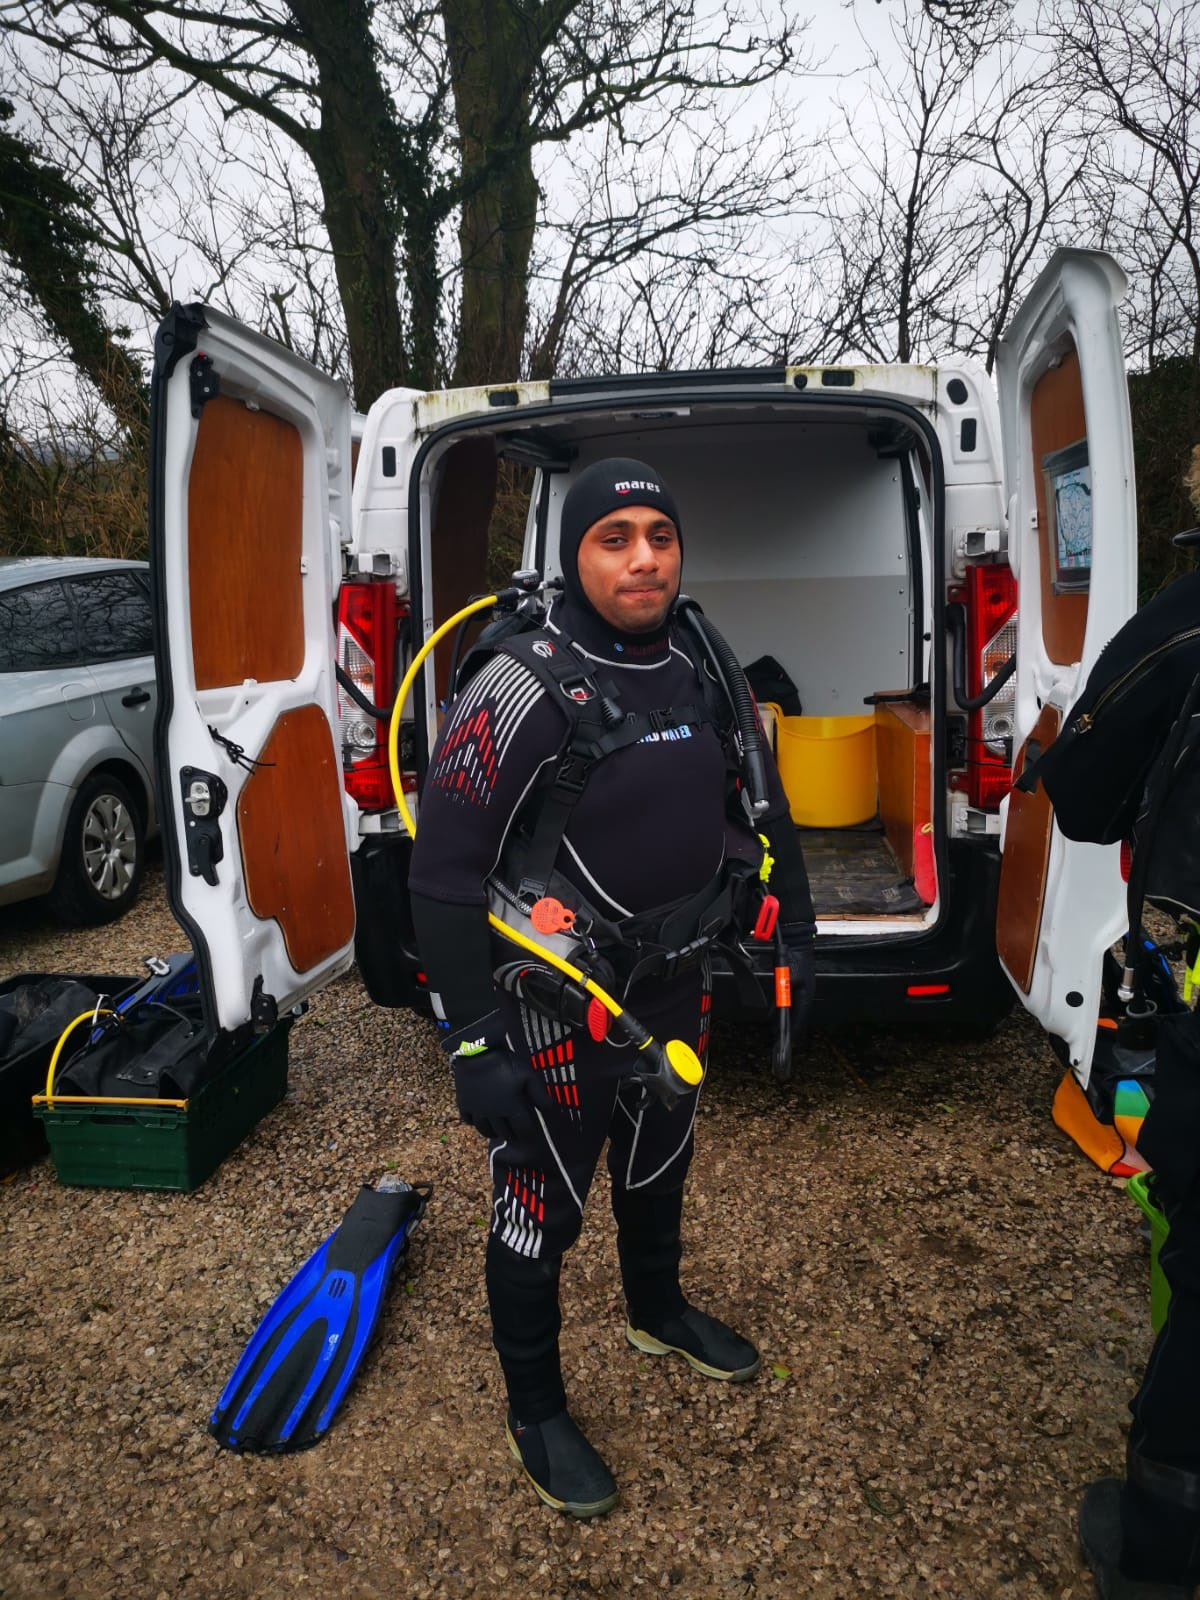 Mohammed Salid in his diving gear.